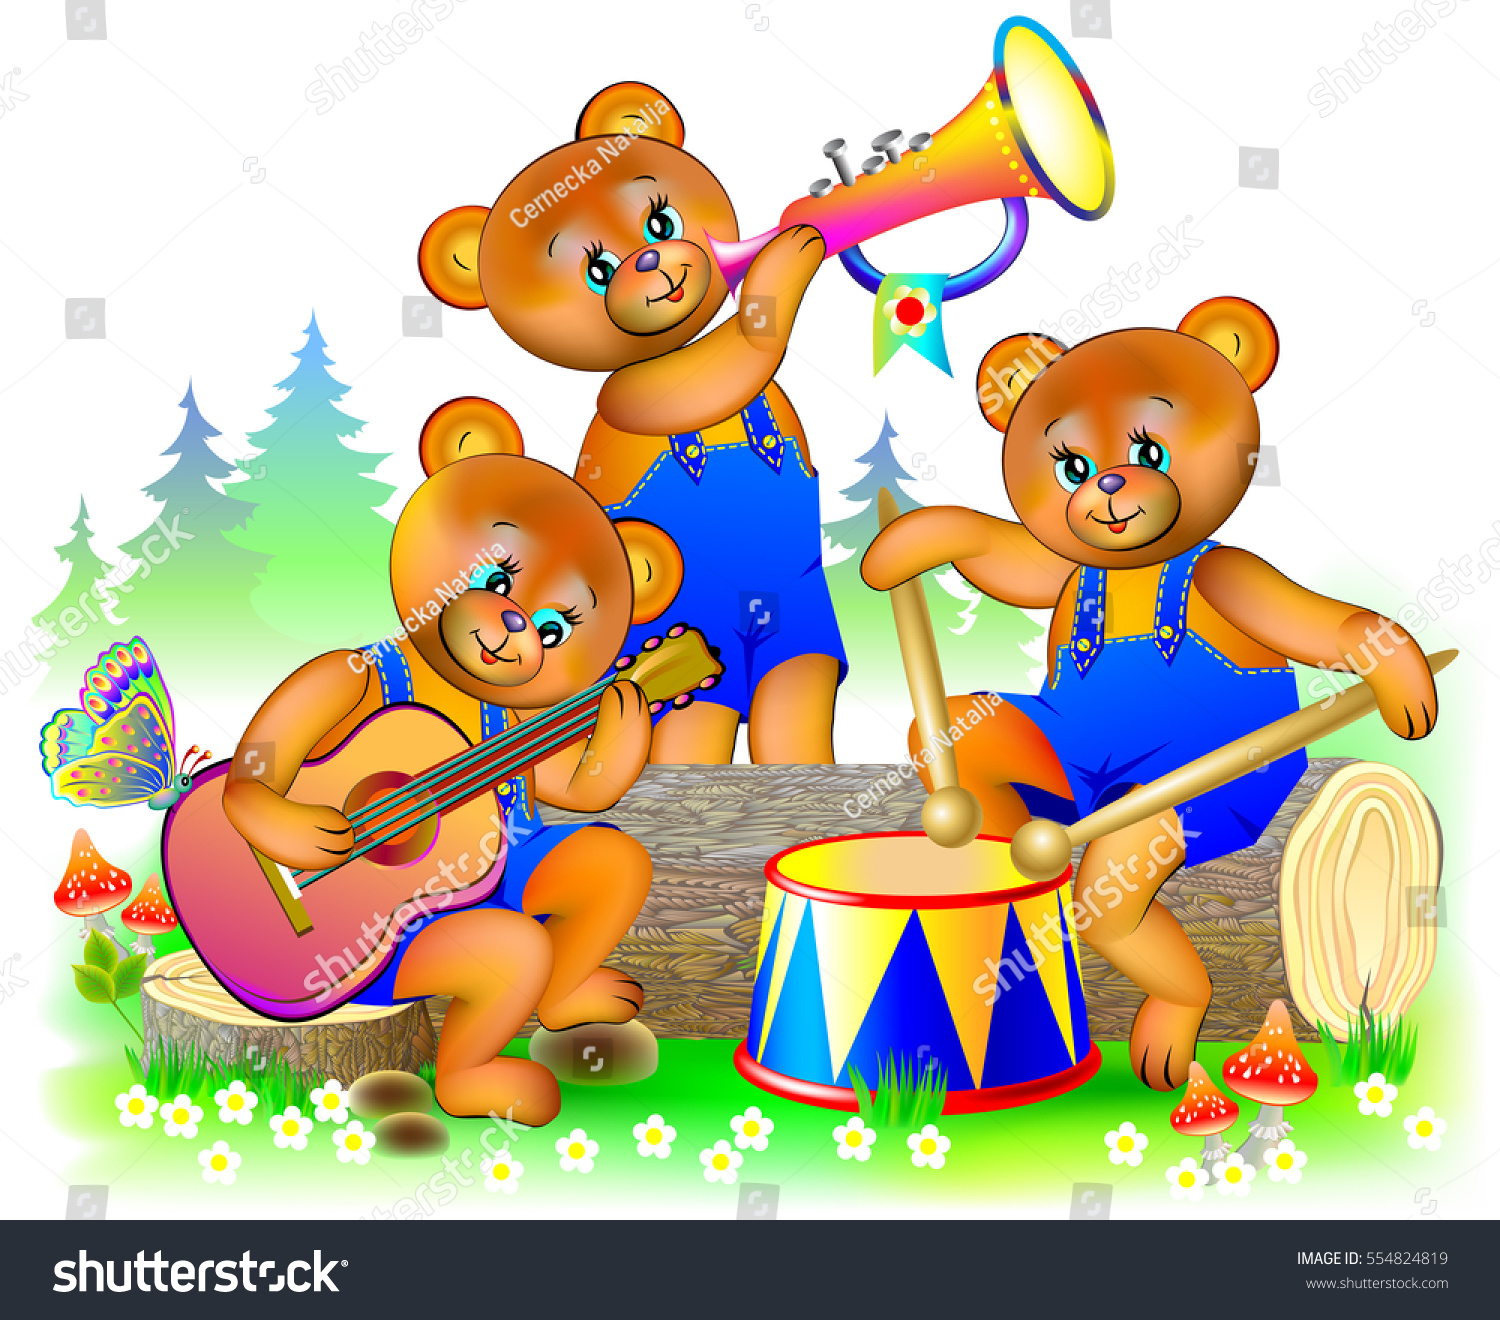 Uncategorized Three Little Bear illustration three little teddy bears playing stock vector of musical instruments in the orchestra cartoon image